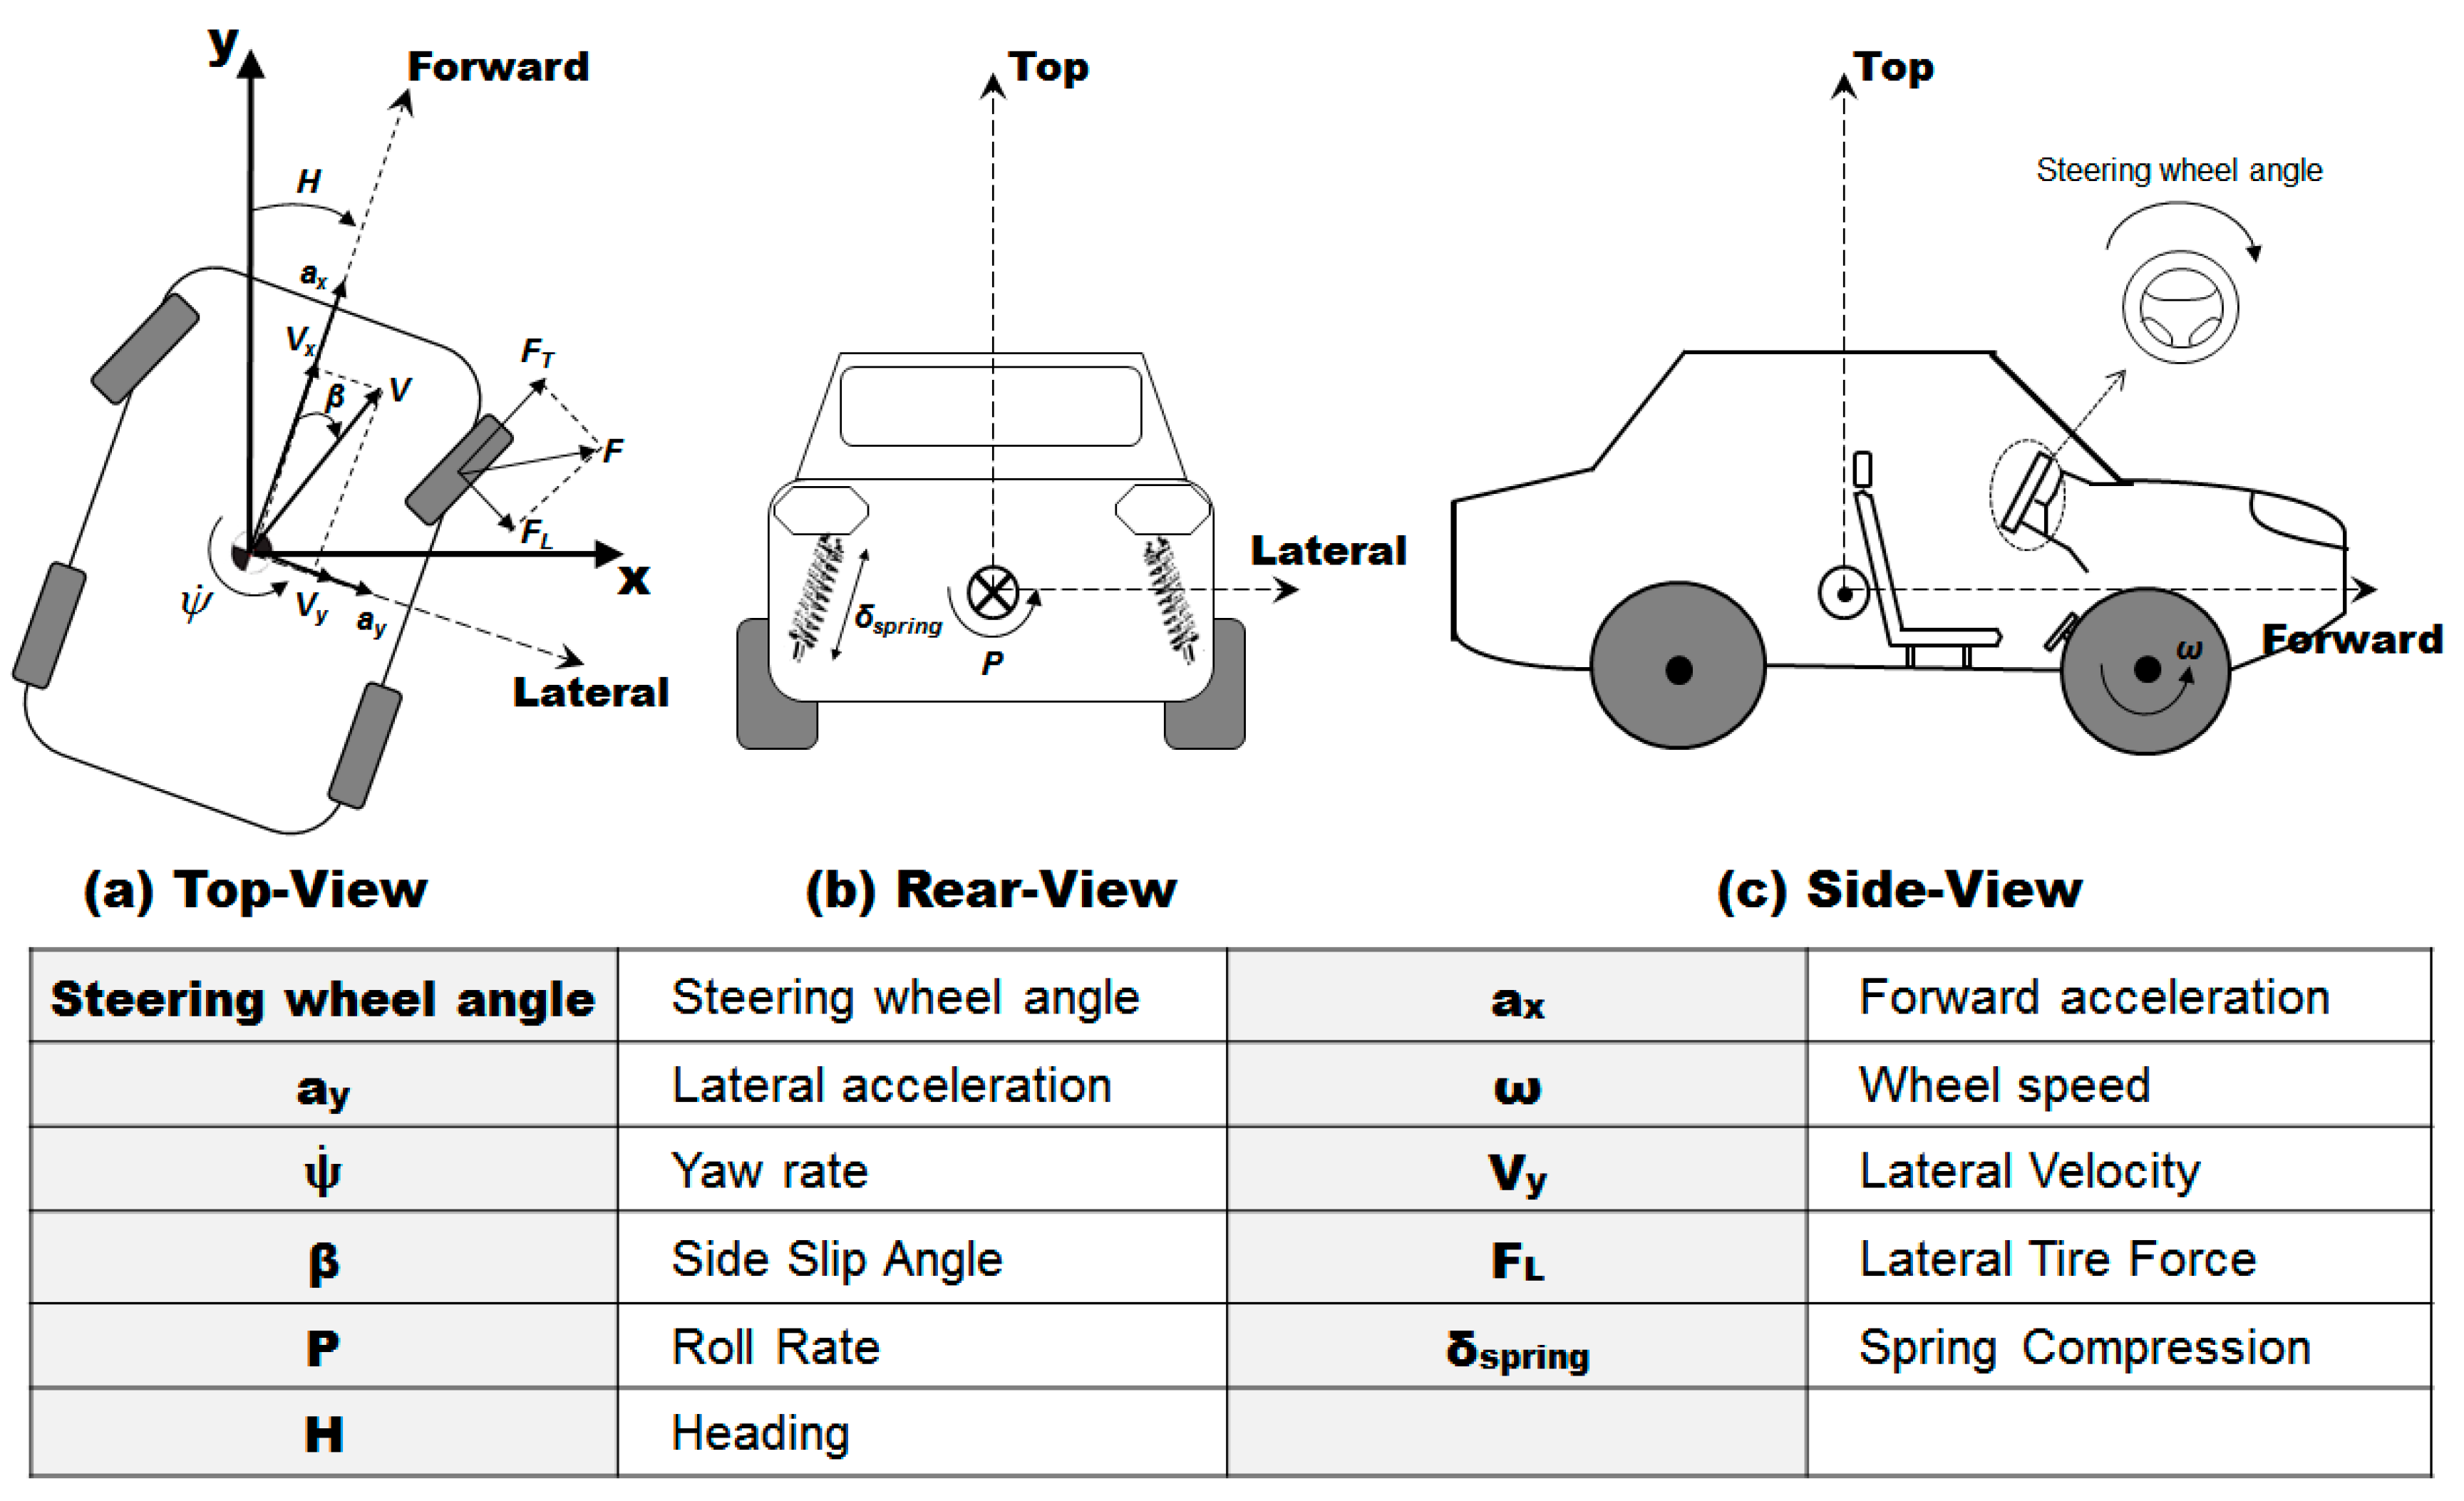 Sensors | Free Full-Text | Prediction of Driver's Intention